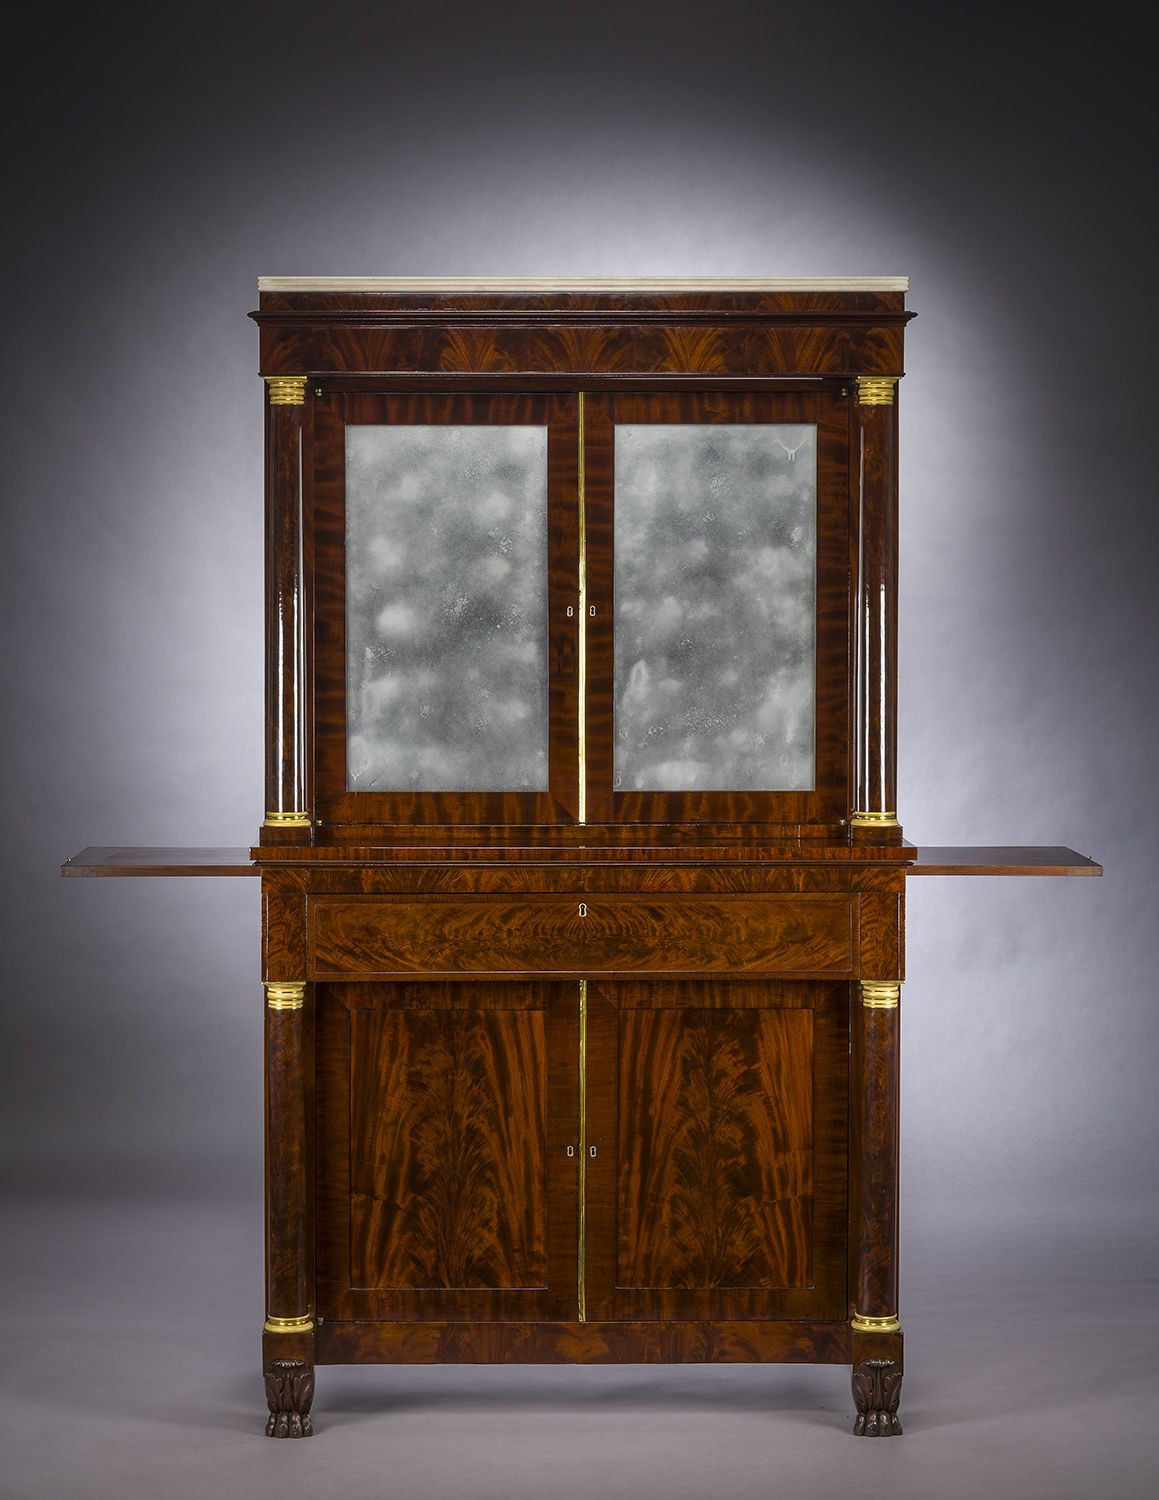 Cabinet Attributed to Duncan Phyfe, New York